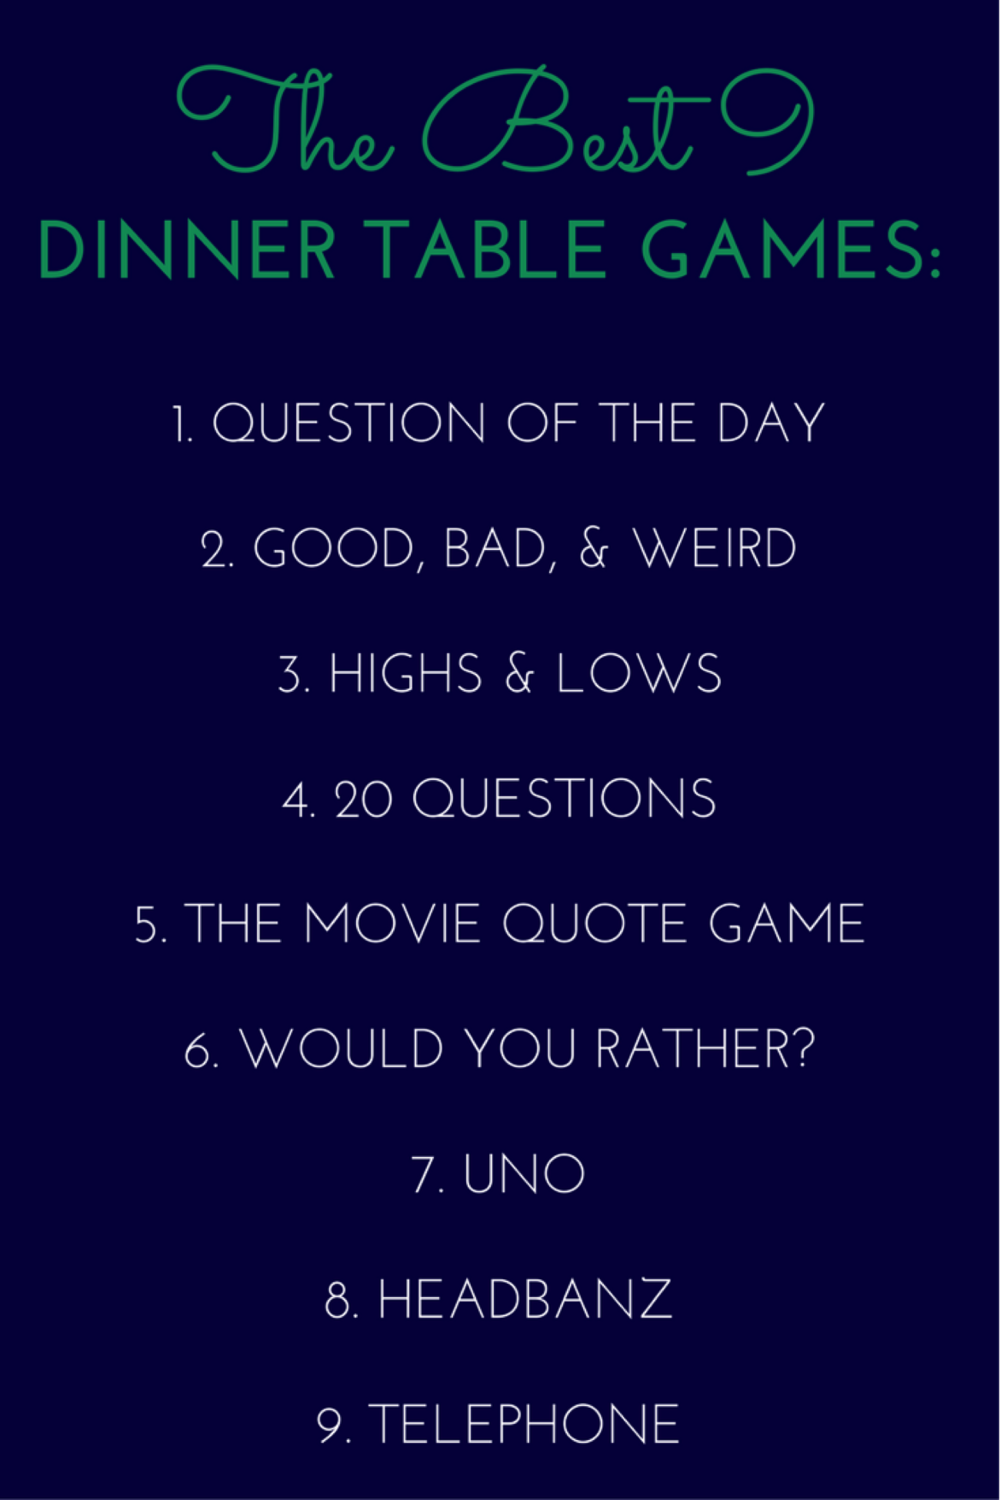 dinner_table_games-3.png